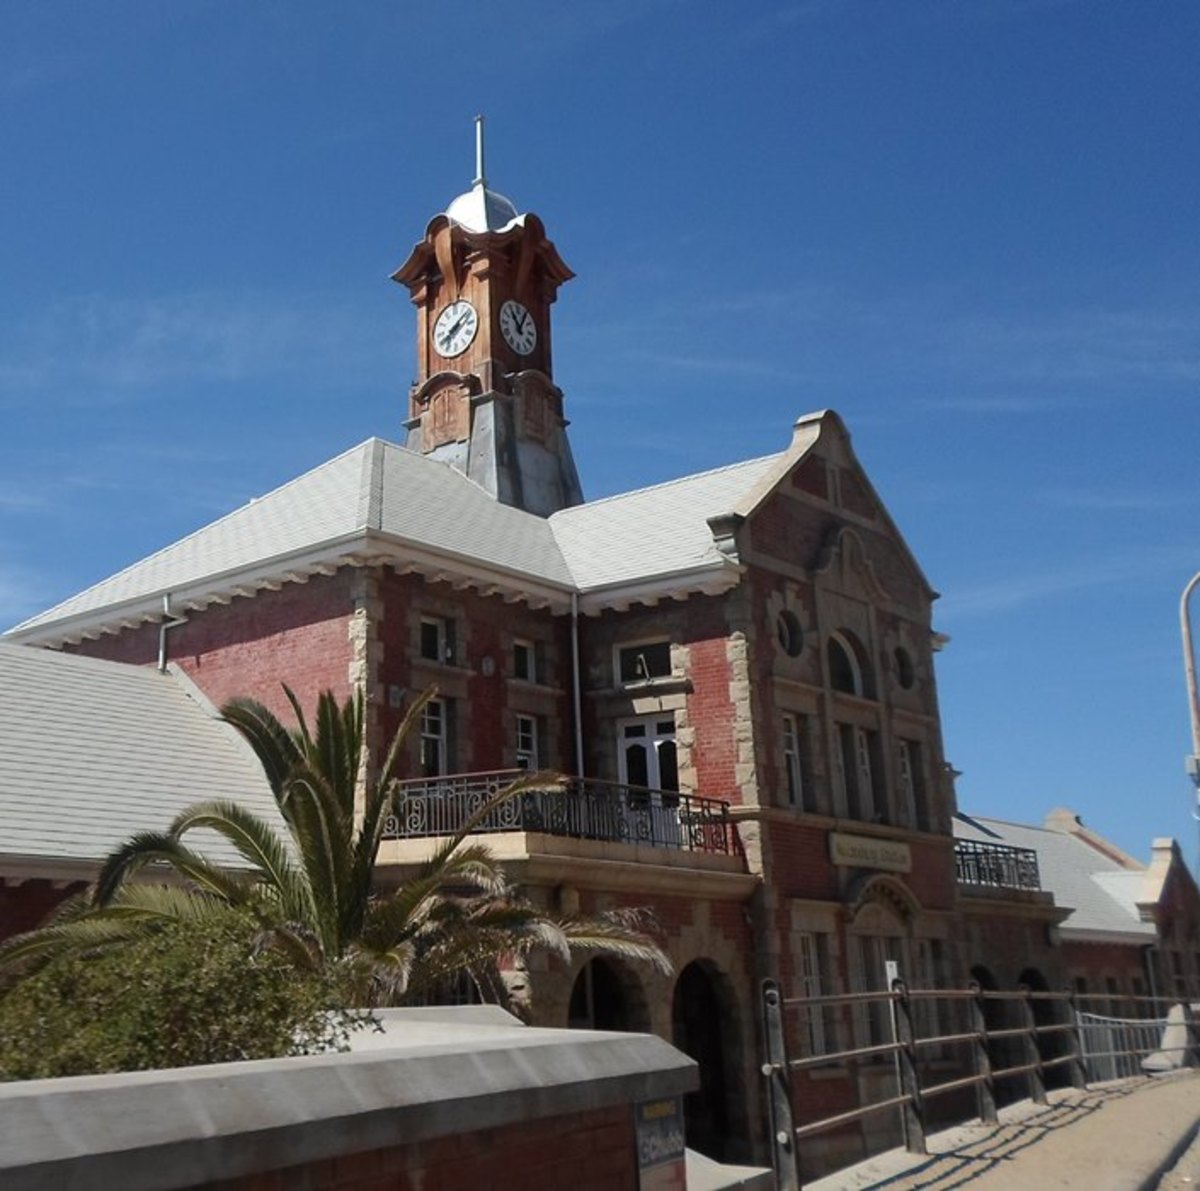 Muizenberg Station, Cape Town, South Africa